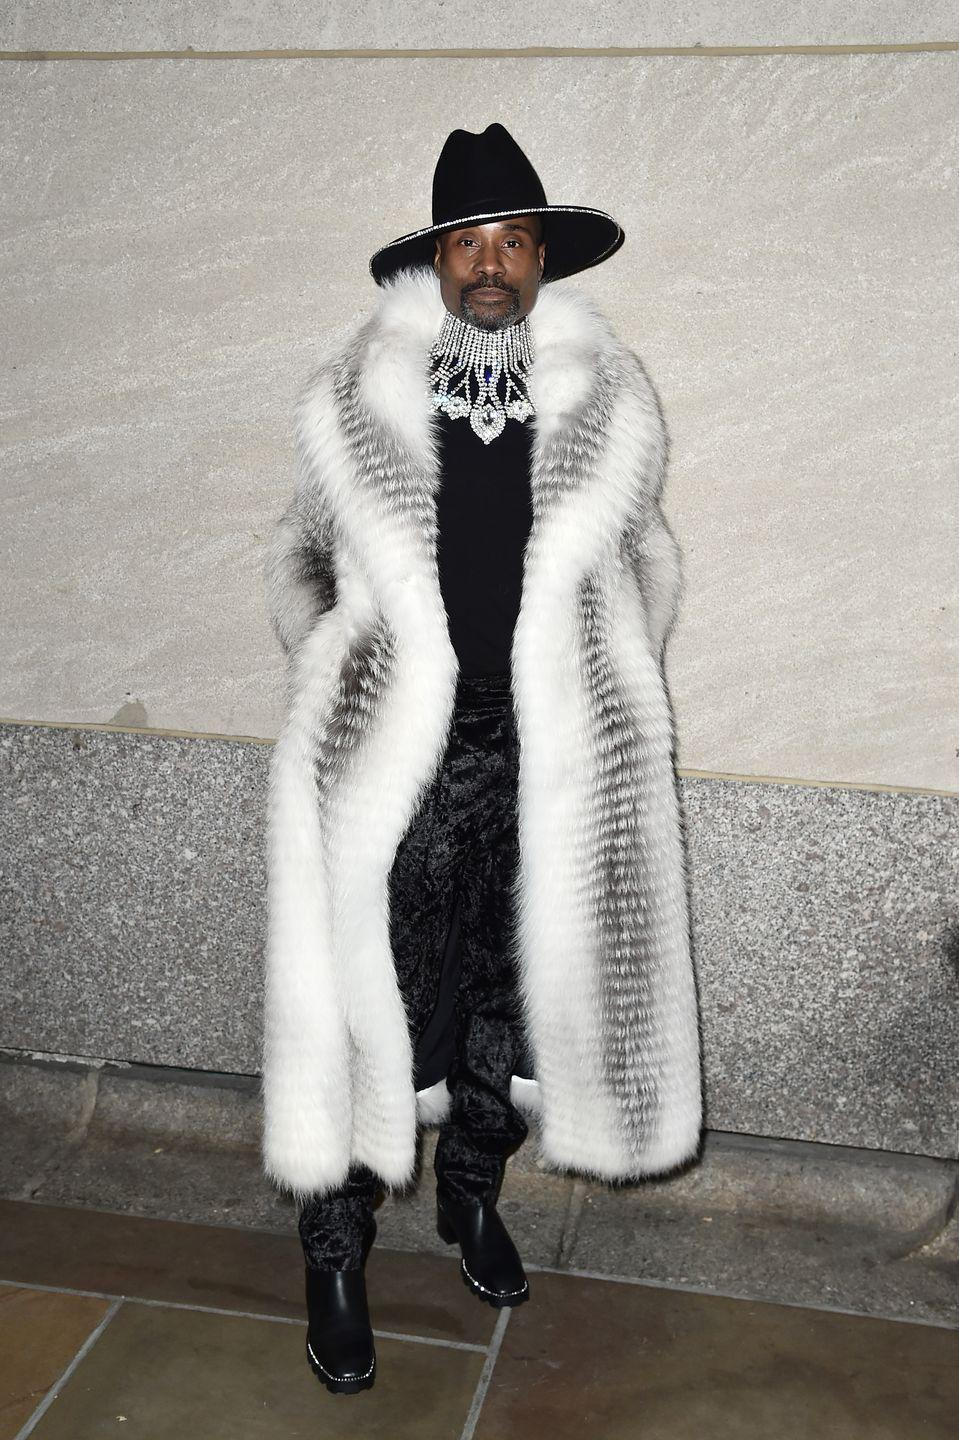 """<p>For a performance at the 87th Annual Rockefeller Center Christmas tree lighting ceremony, the star wore a white and black coat by Helen Yarmark, trousers by Sharon Wauchob, a black fedora by Eshensel, black heeled boots by Jimmy Choo and jewellery by Oscar Heyman.</p><p>'We LIT that tree henneys!!! he captioned a photograph of his attire on <a href=""""https://www.instagram.com/p/B5tADyHlBxe/"""" rel=""""nofollow noopener"""" target=""""_blank"""" data-ylk=""""slk:Instagram"""" class=""""link rapid-noclick-resp"""">Instagram</a>. </p>"""